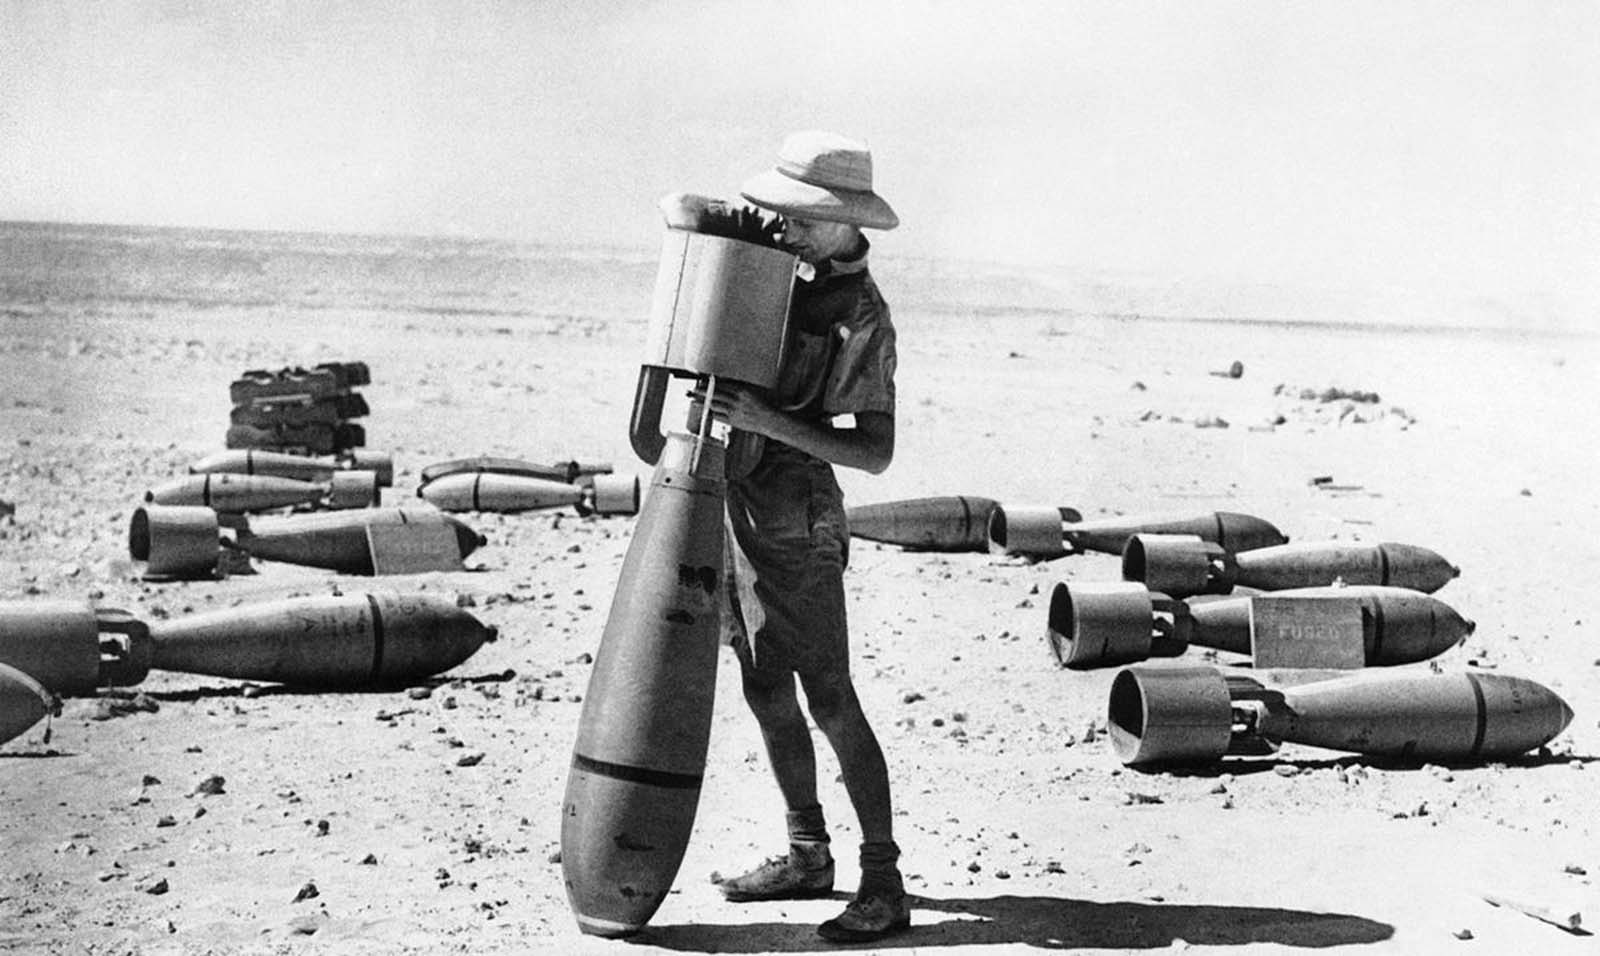 This armorer of the R.A.F.'s middle east command prepares a bomb for its mission against the Italian forces campaigning in Africa. This big bomb is not yet fused, but when it is it will be ready for its deadly work. Photo taken on October 24, 1940.